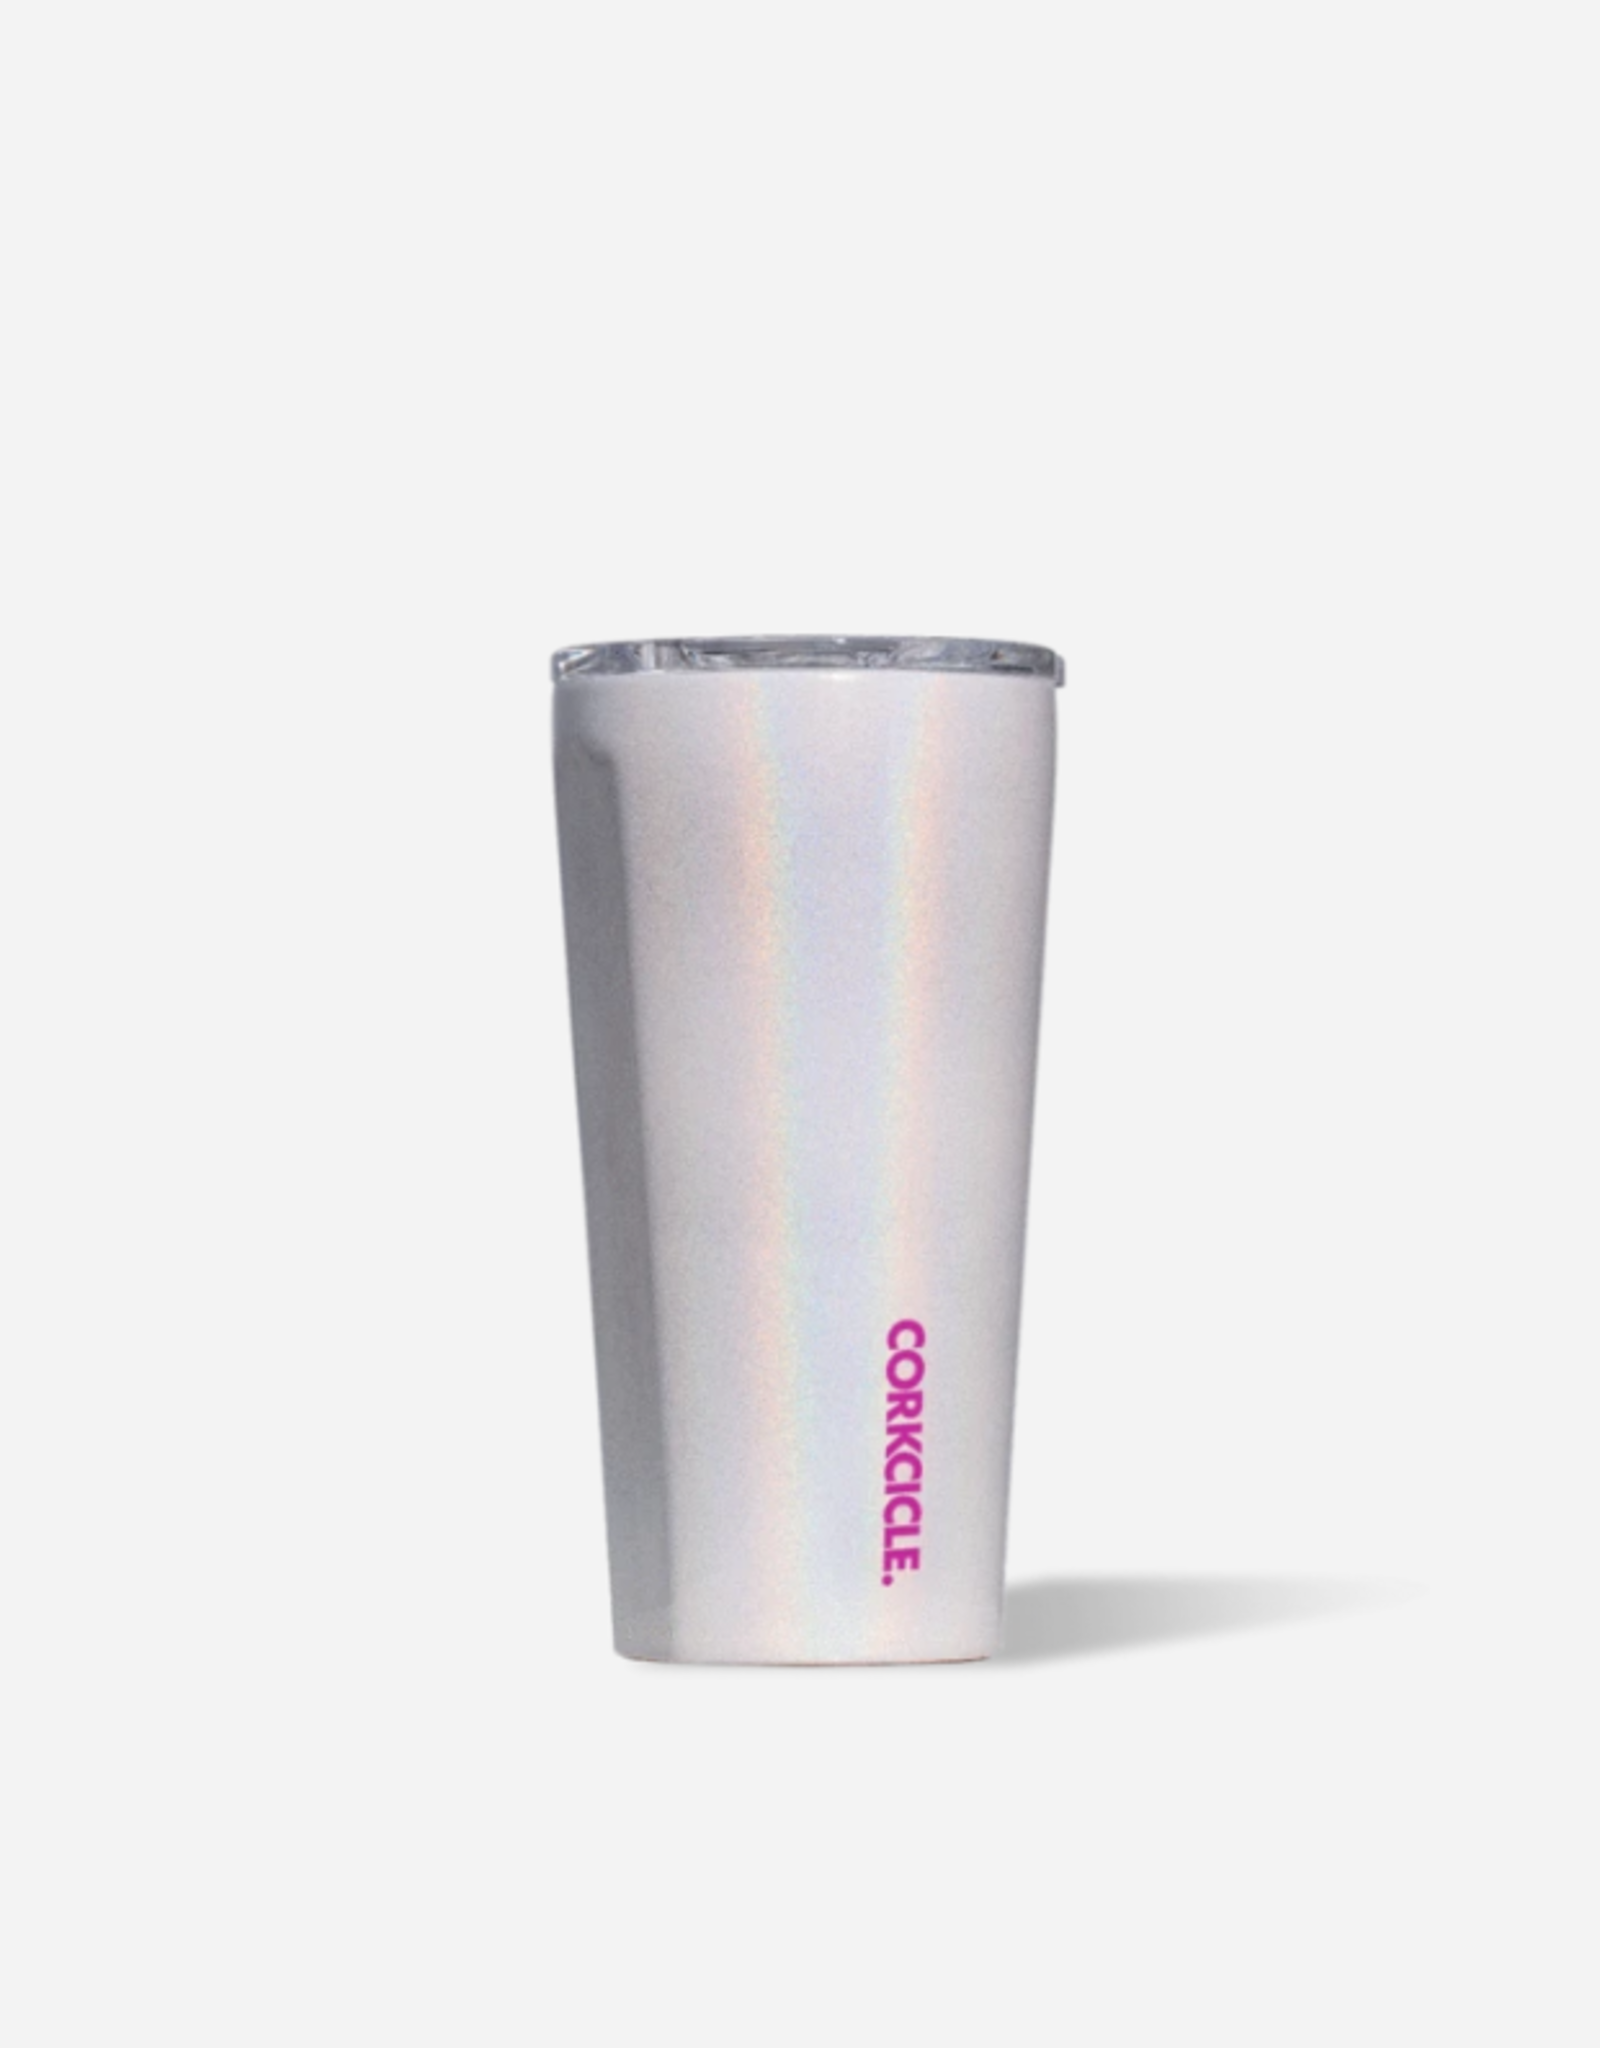 Corkcicle Corkcicle Tumbler 16oz, Unicorn Magic